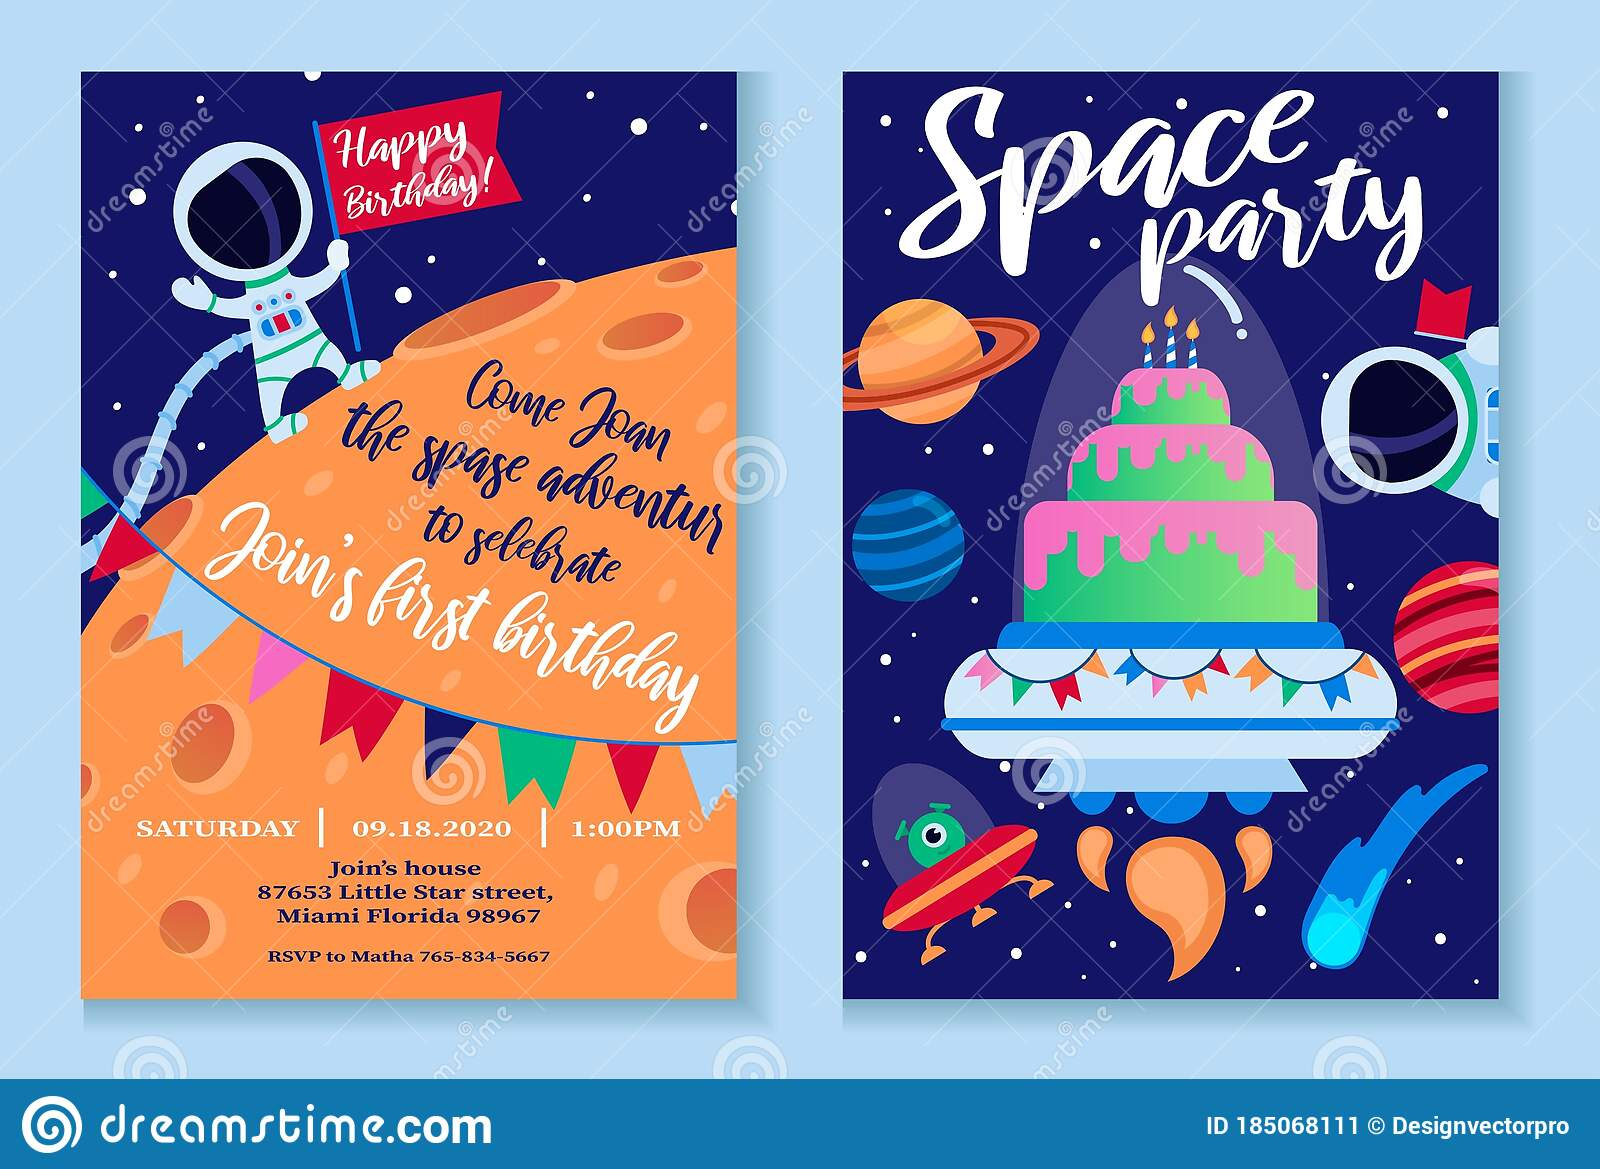 space party invitation template with bright decor stock vector illustration of cosmonaut information 185068111